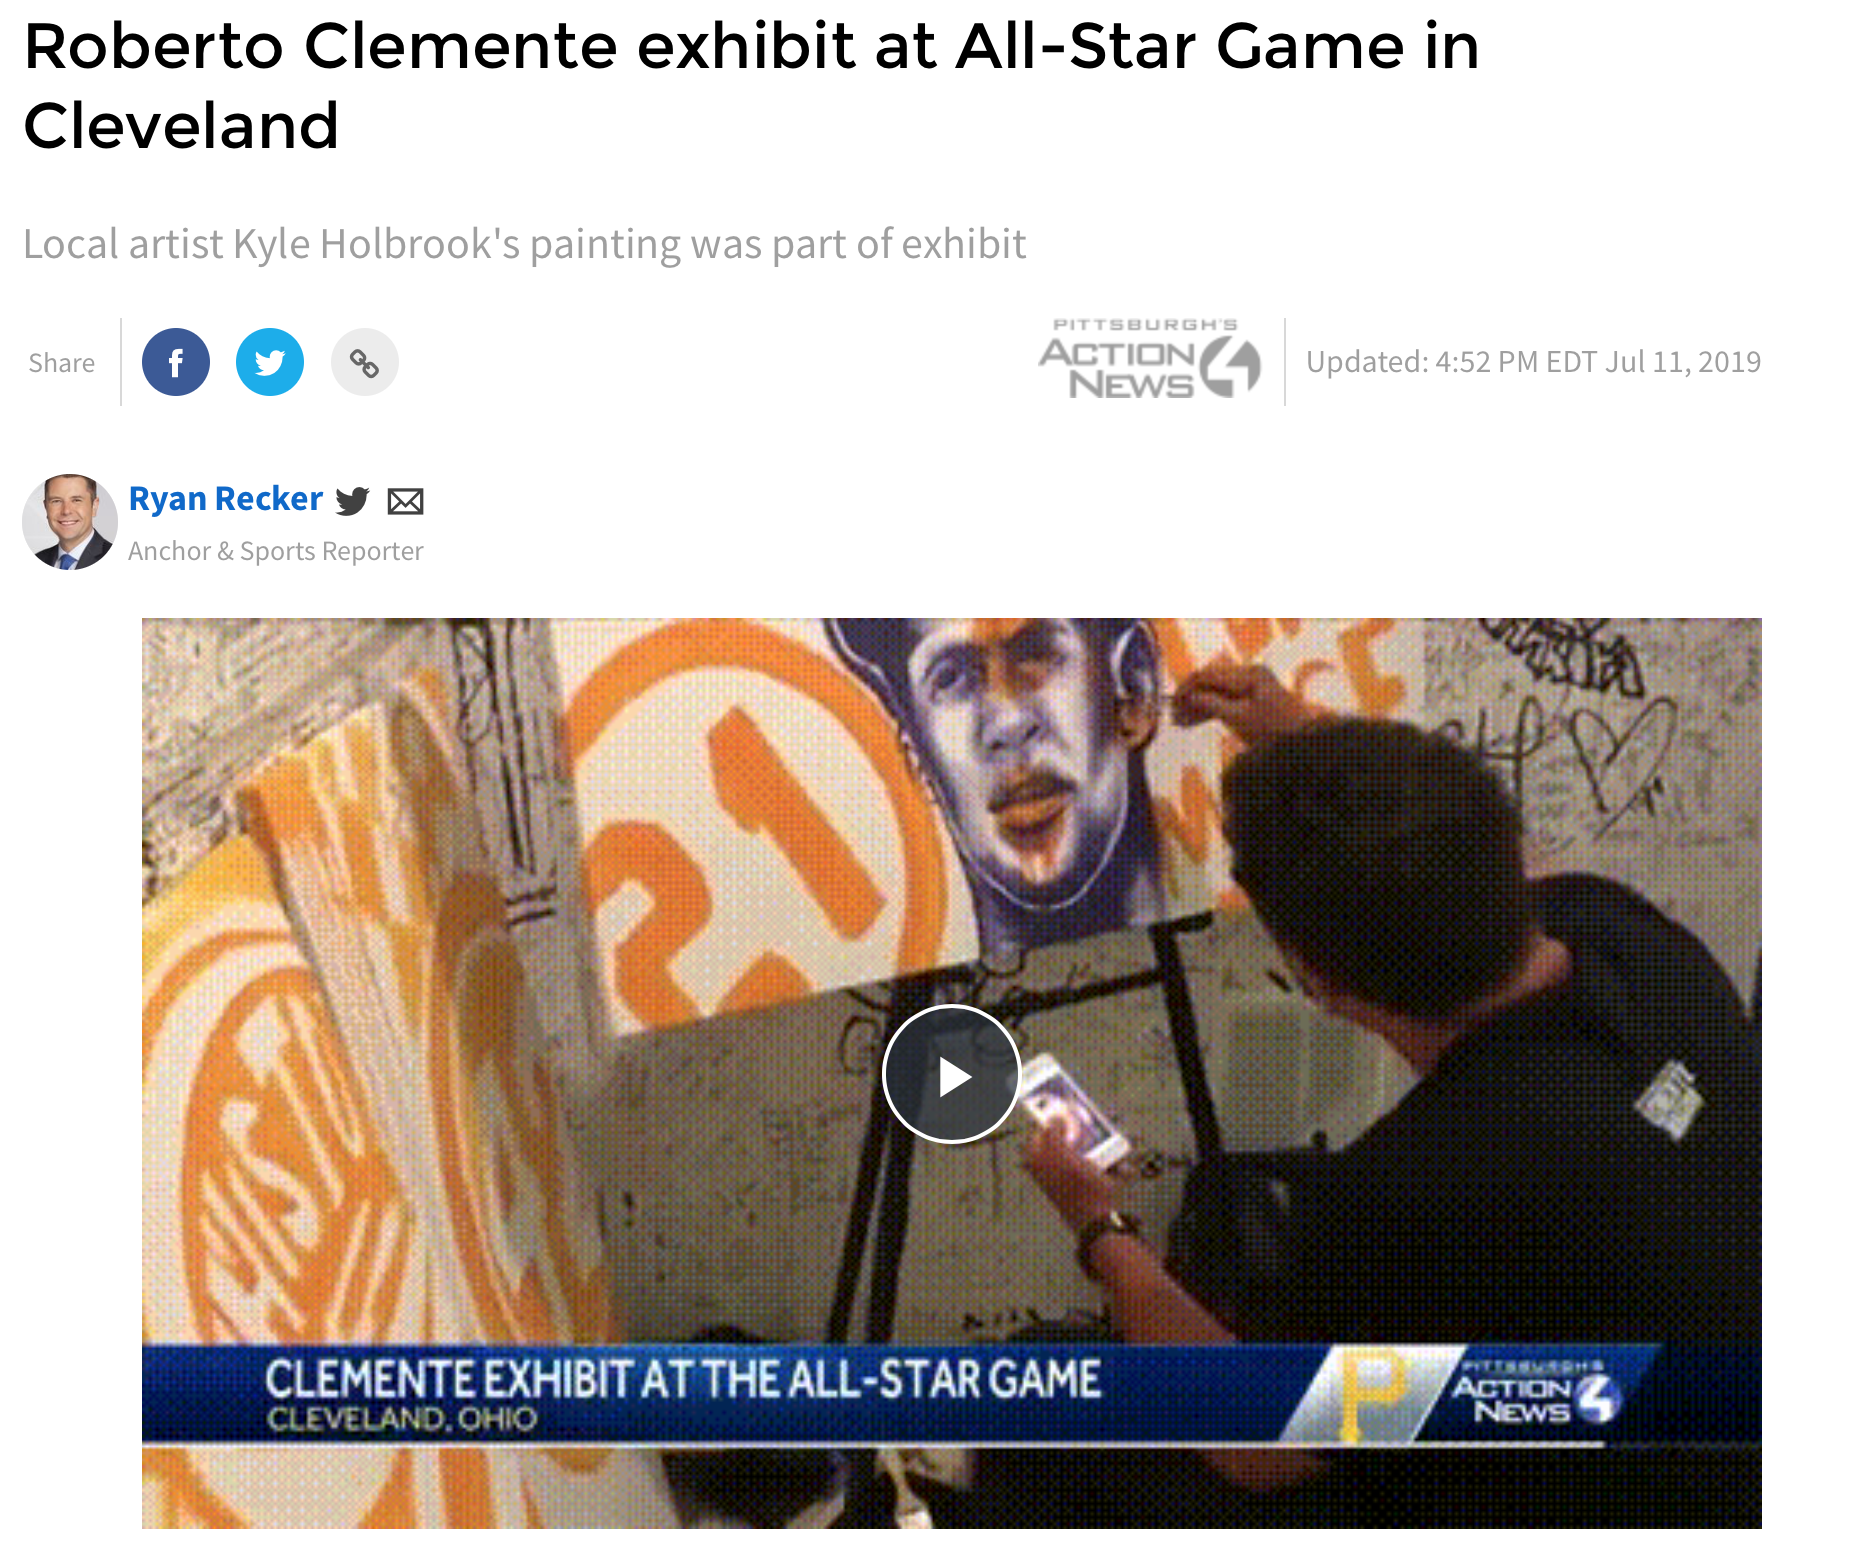 Kyle Holbrook created three murals for MLK All- Star Game in Cleveland as part of the Clemente Museum exhibit, one mural was donated to the Negro Leagues museum in Kansas City